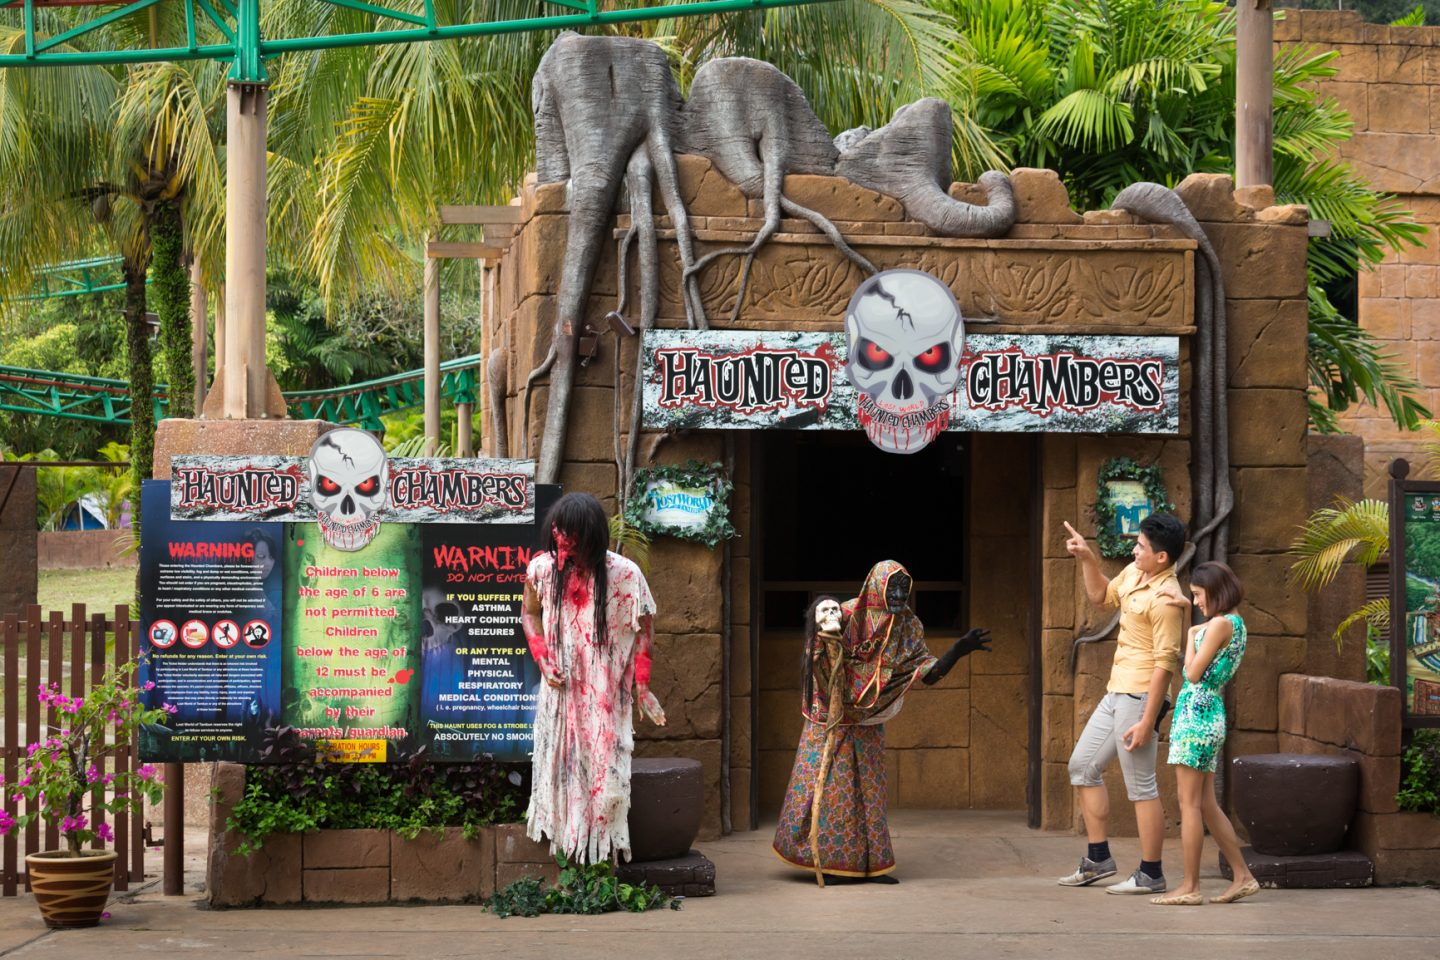 Lost World Haunted Chambers - Lost World of Tambun